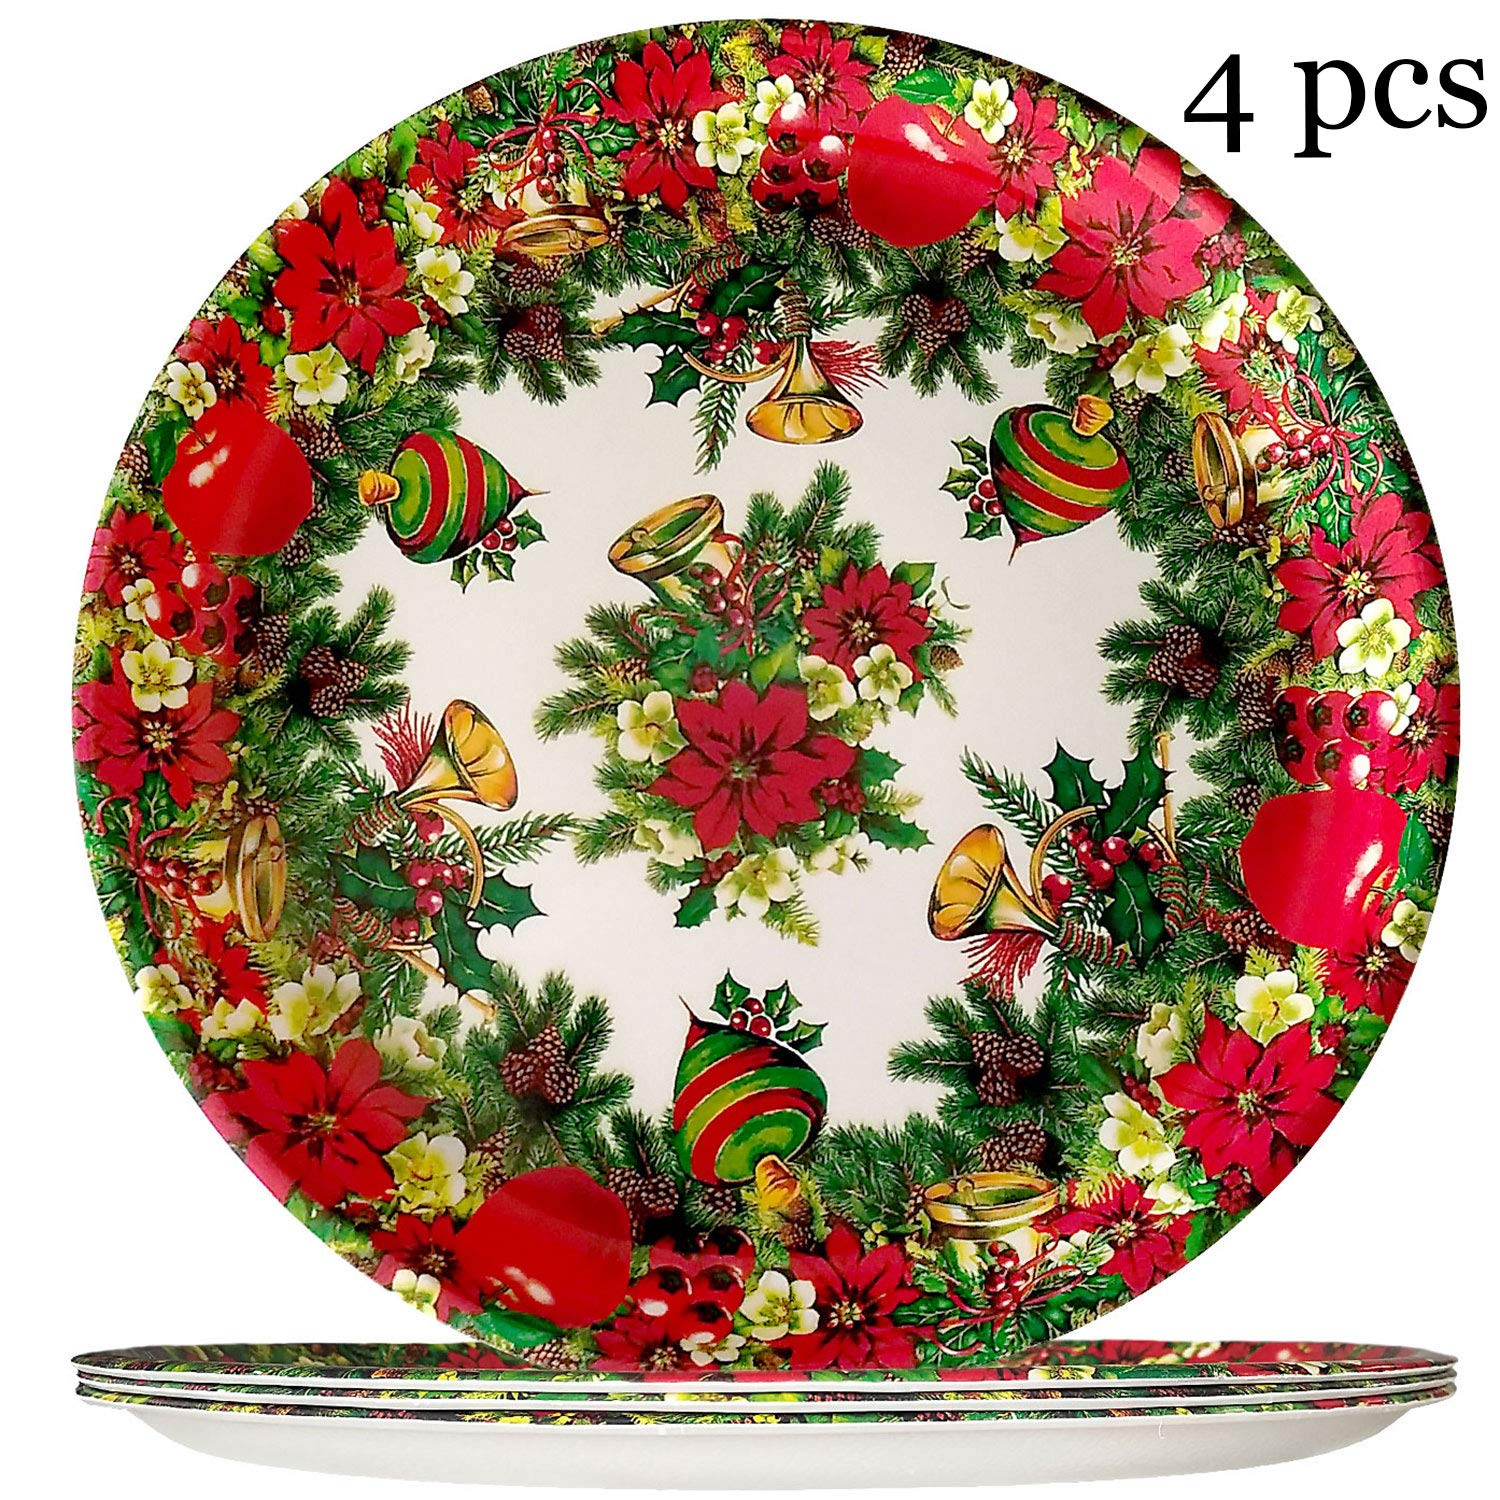 Christmas Platter Plates.Christmas Dinner Plates Set Christmas Tree Melamine Plate 11 Inch Shatter Proof And Chip Resistant Dinnerware Set Of 4 Christmas Party Supplies